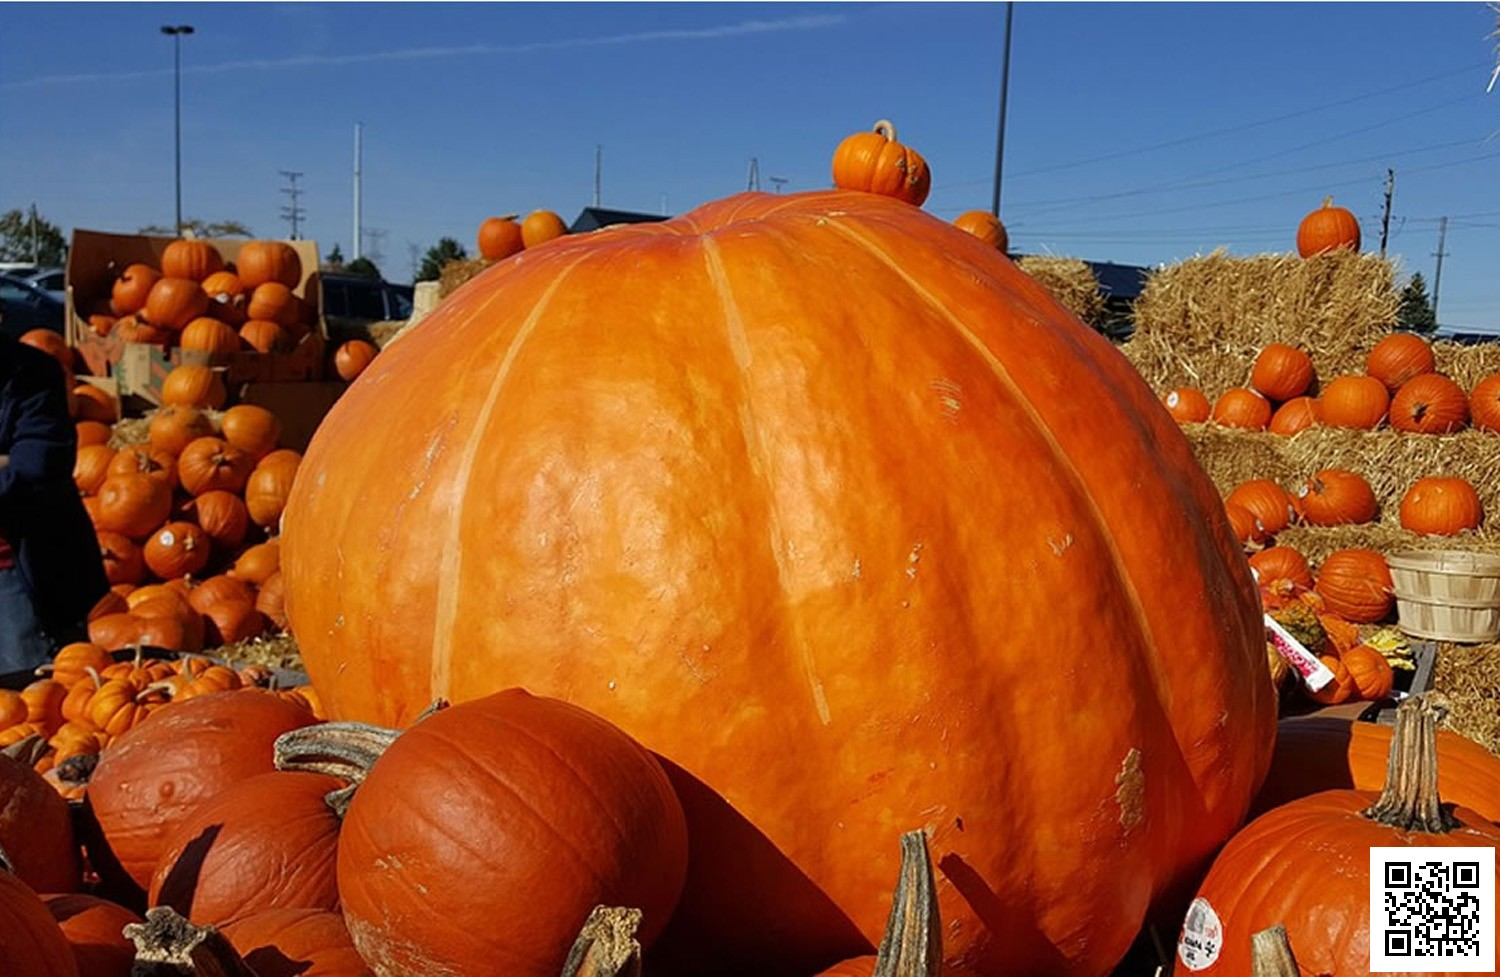 Pumpkin Record With 2,261 Pounder